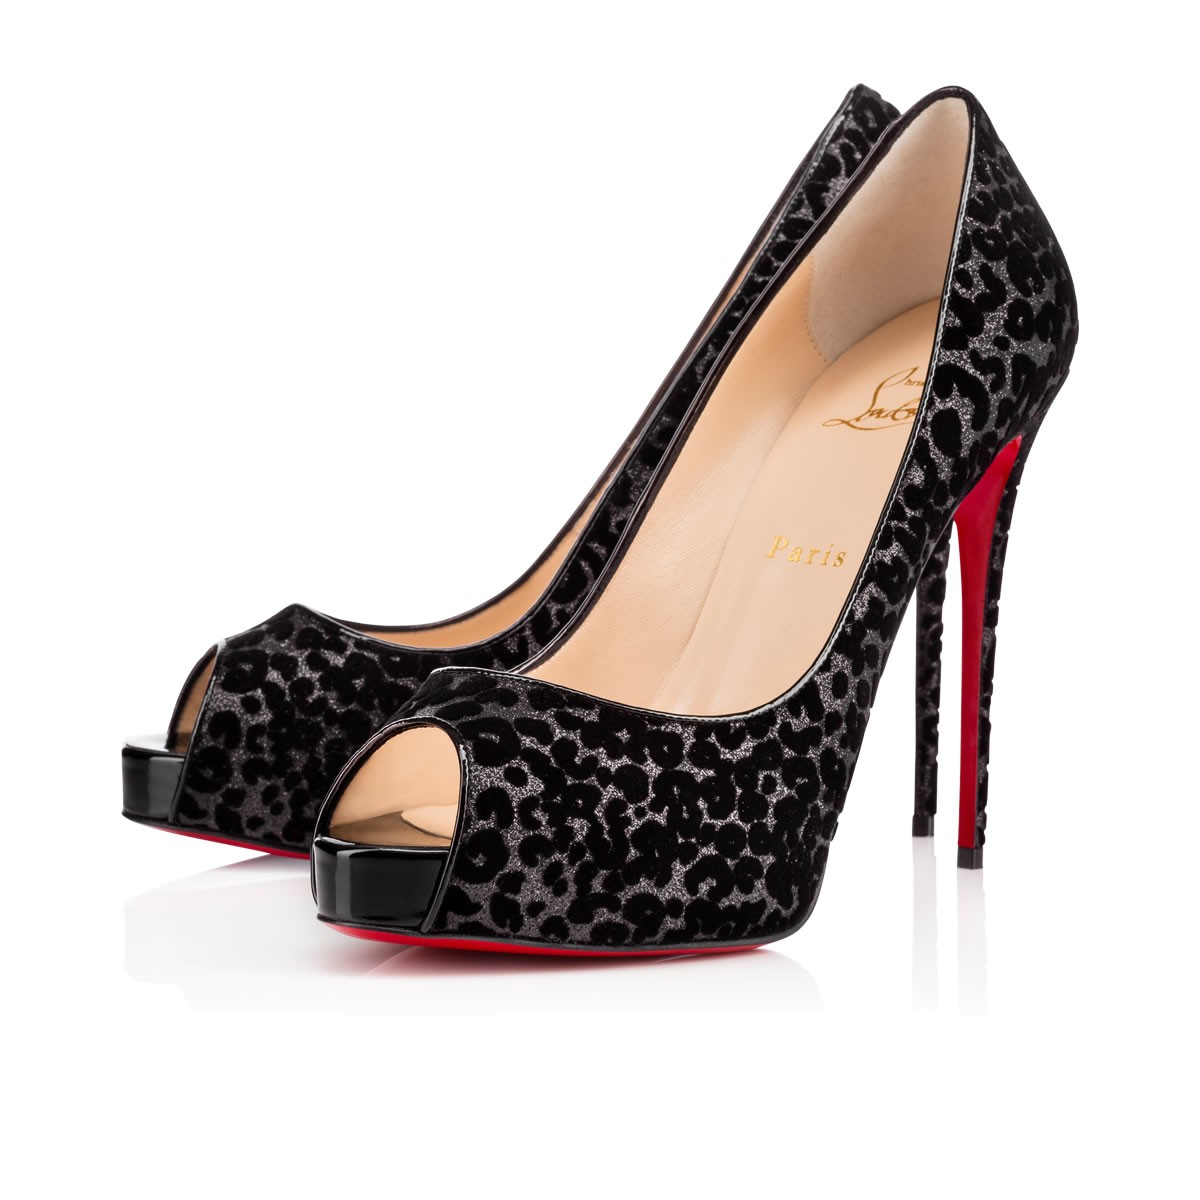 christian louboutin Very Prive peep-toe slingback pumps ...